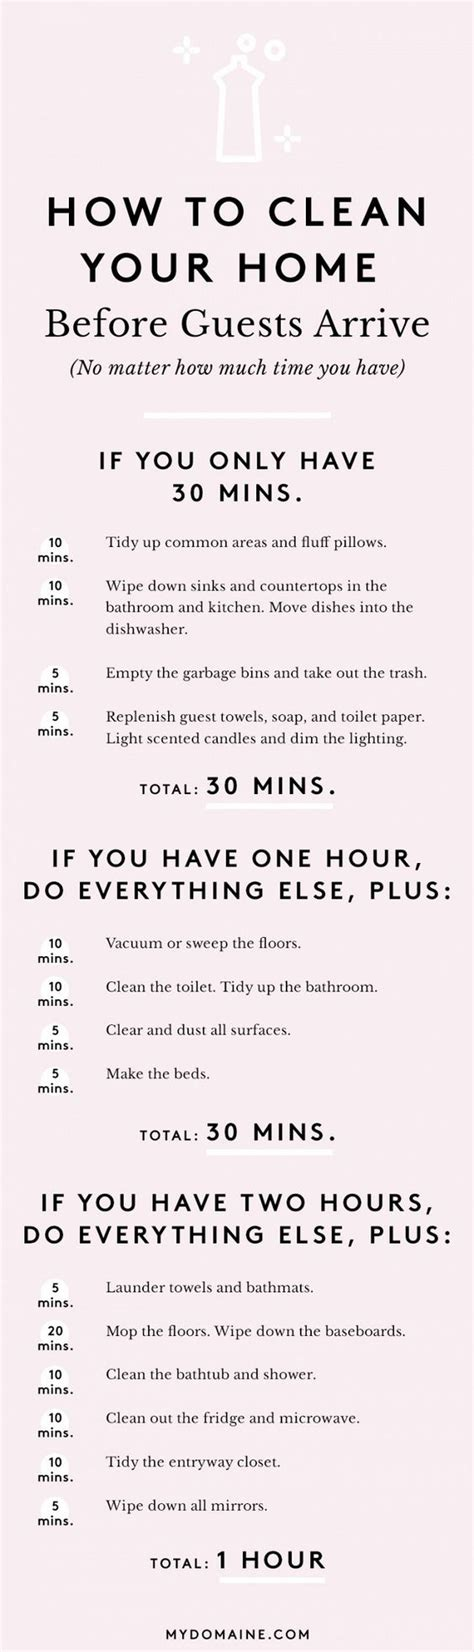 easy ways to clean your room 15 easy ways to clean your room in an hour or less gurl gurl